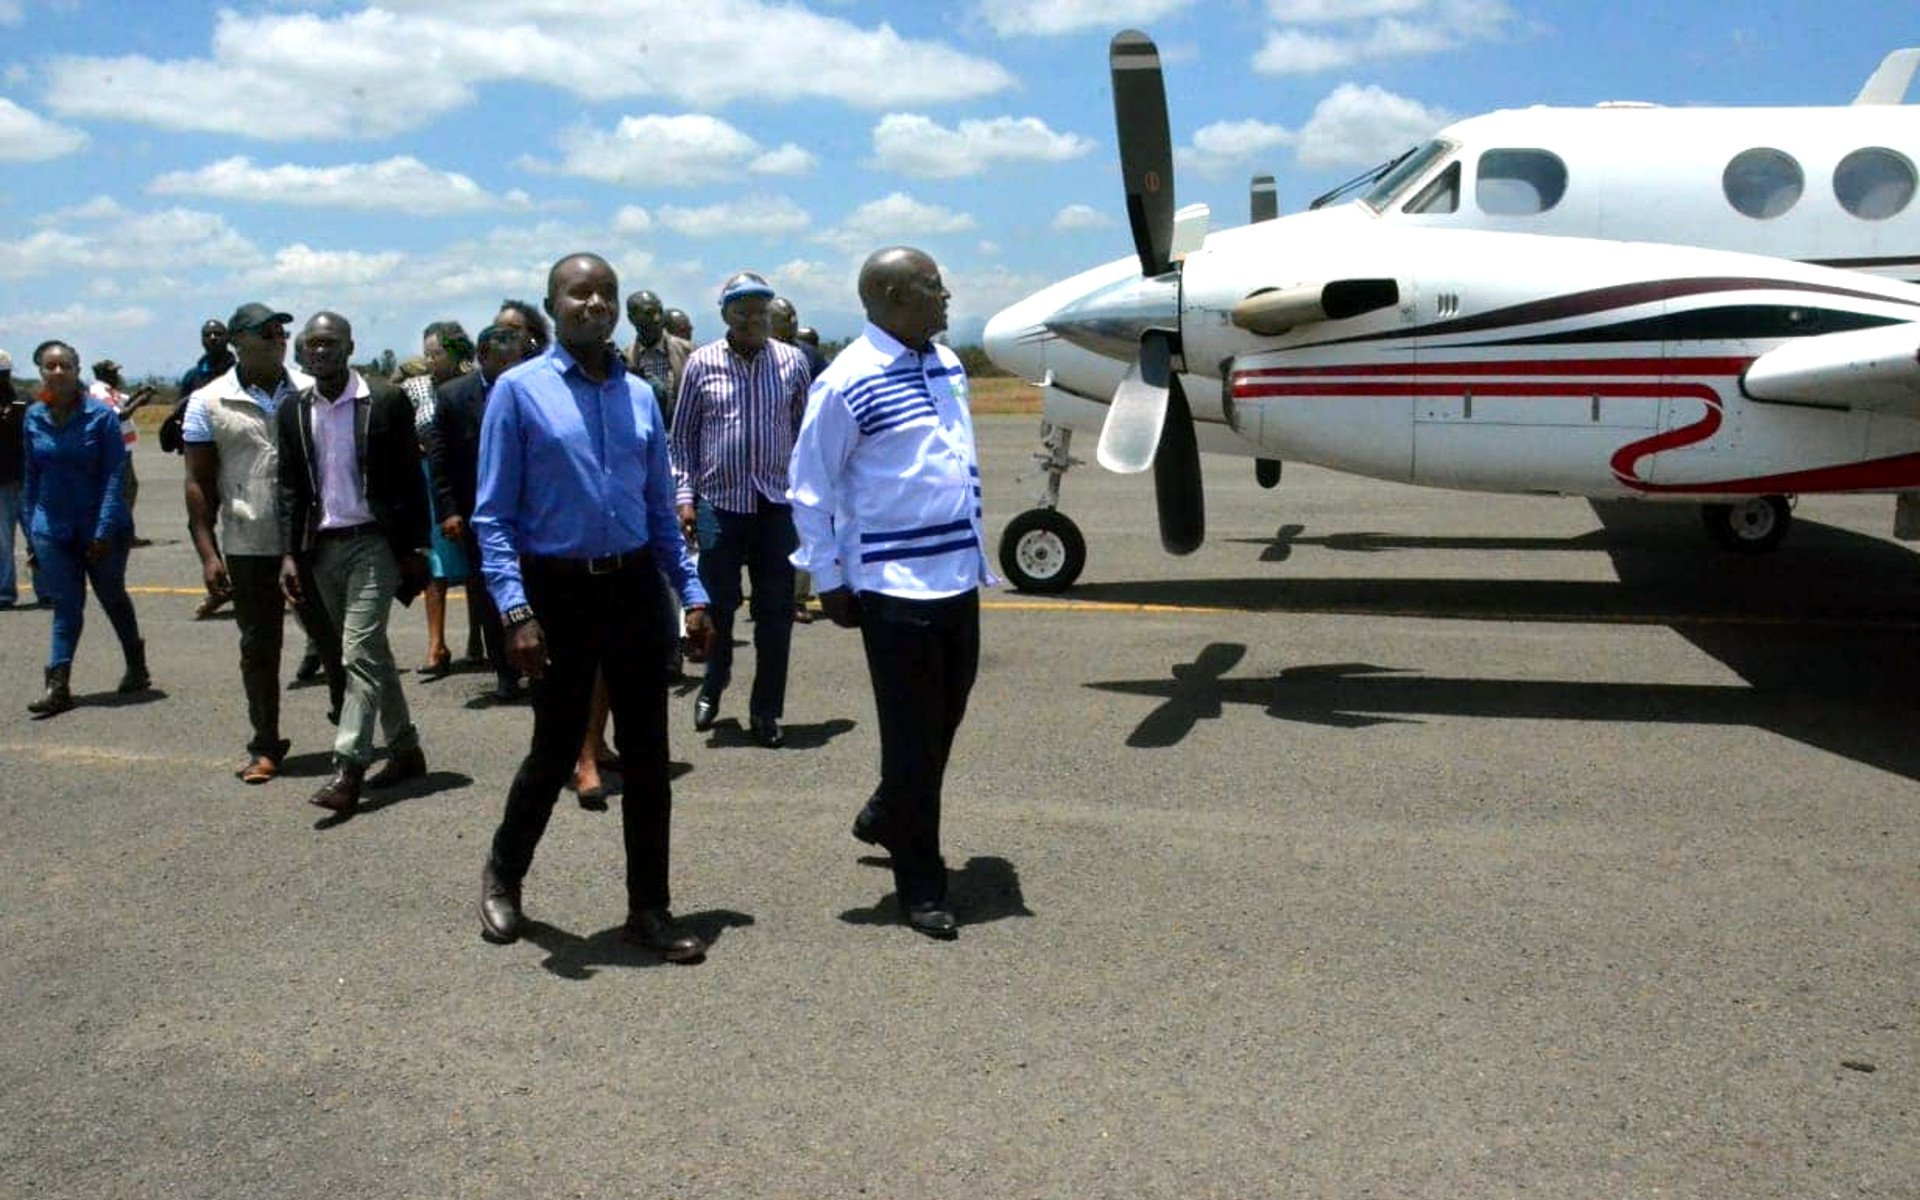 Nyaribo Airstrip which is not commonly used, except by aviation students, is about 15 minutes' drive from Nyeri town. With a 1.2 KM runway, the airstrip can accommodate even bigger planes.